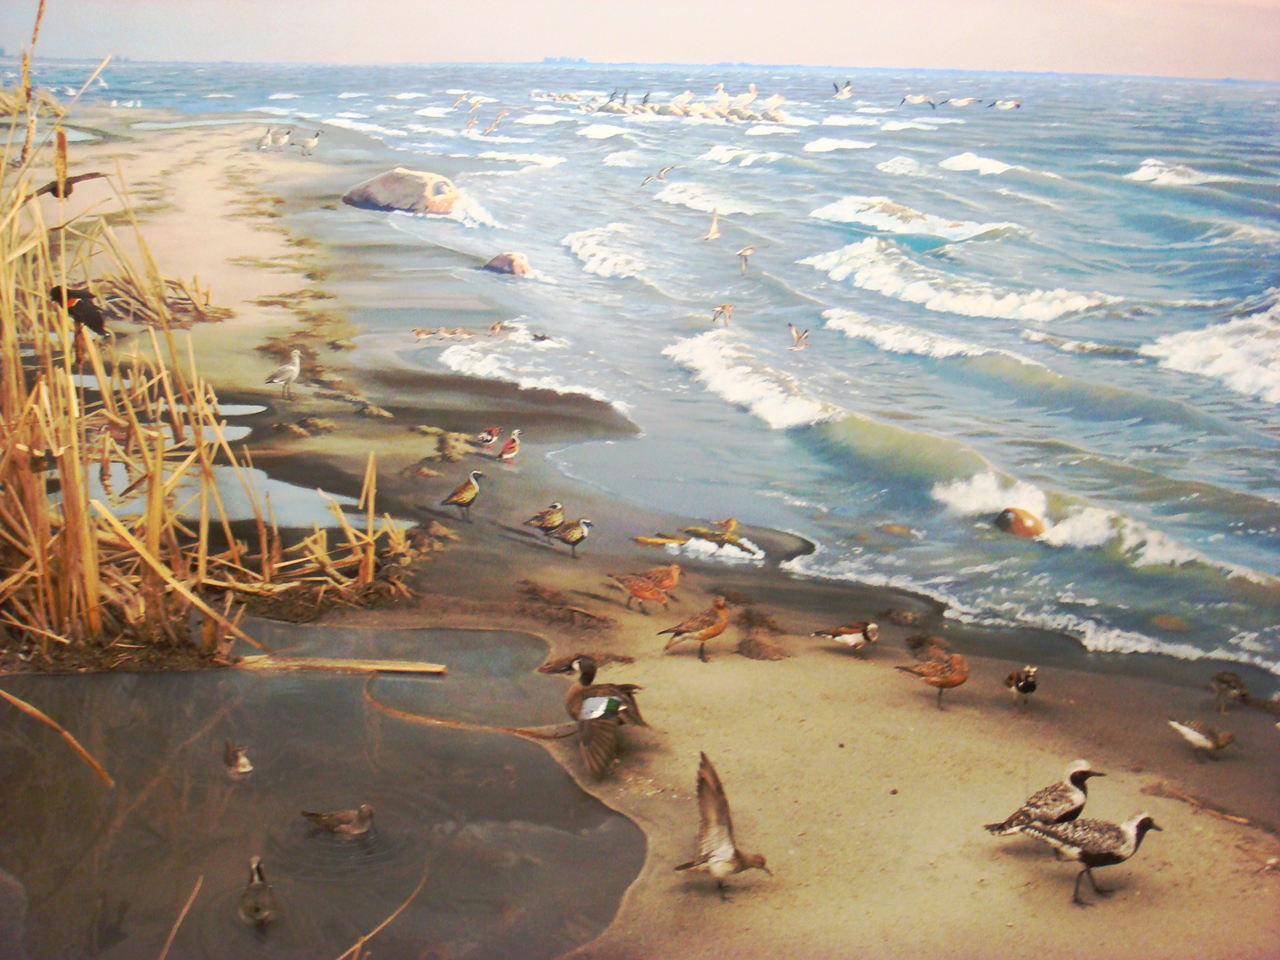 diorama of a Prairie lake with shore birds